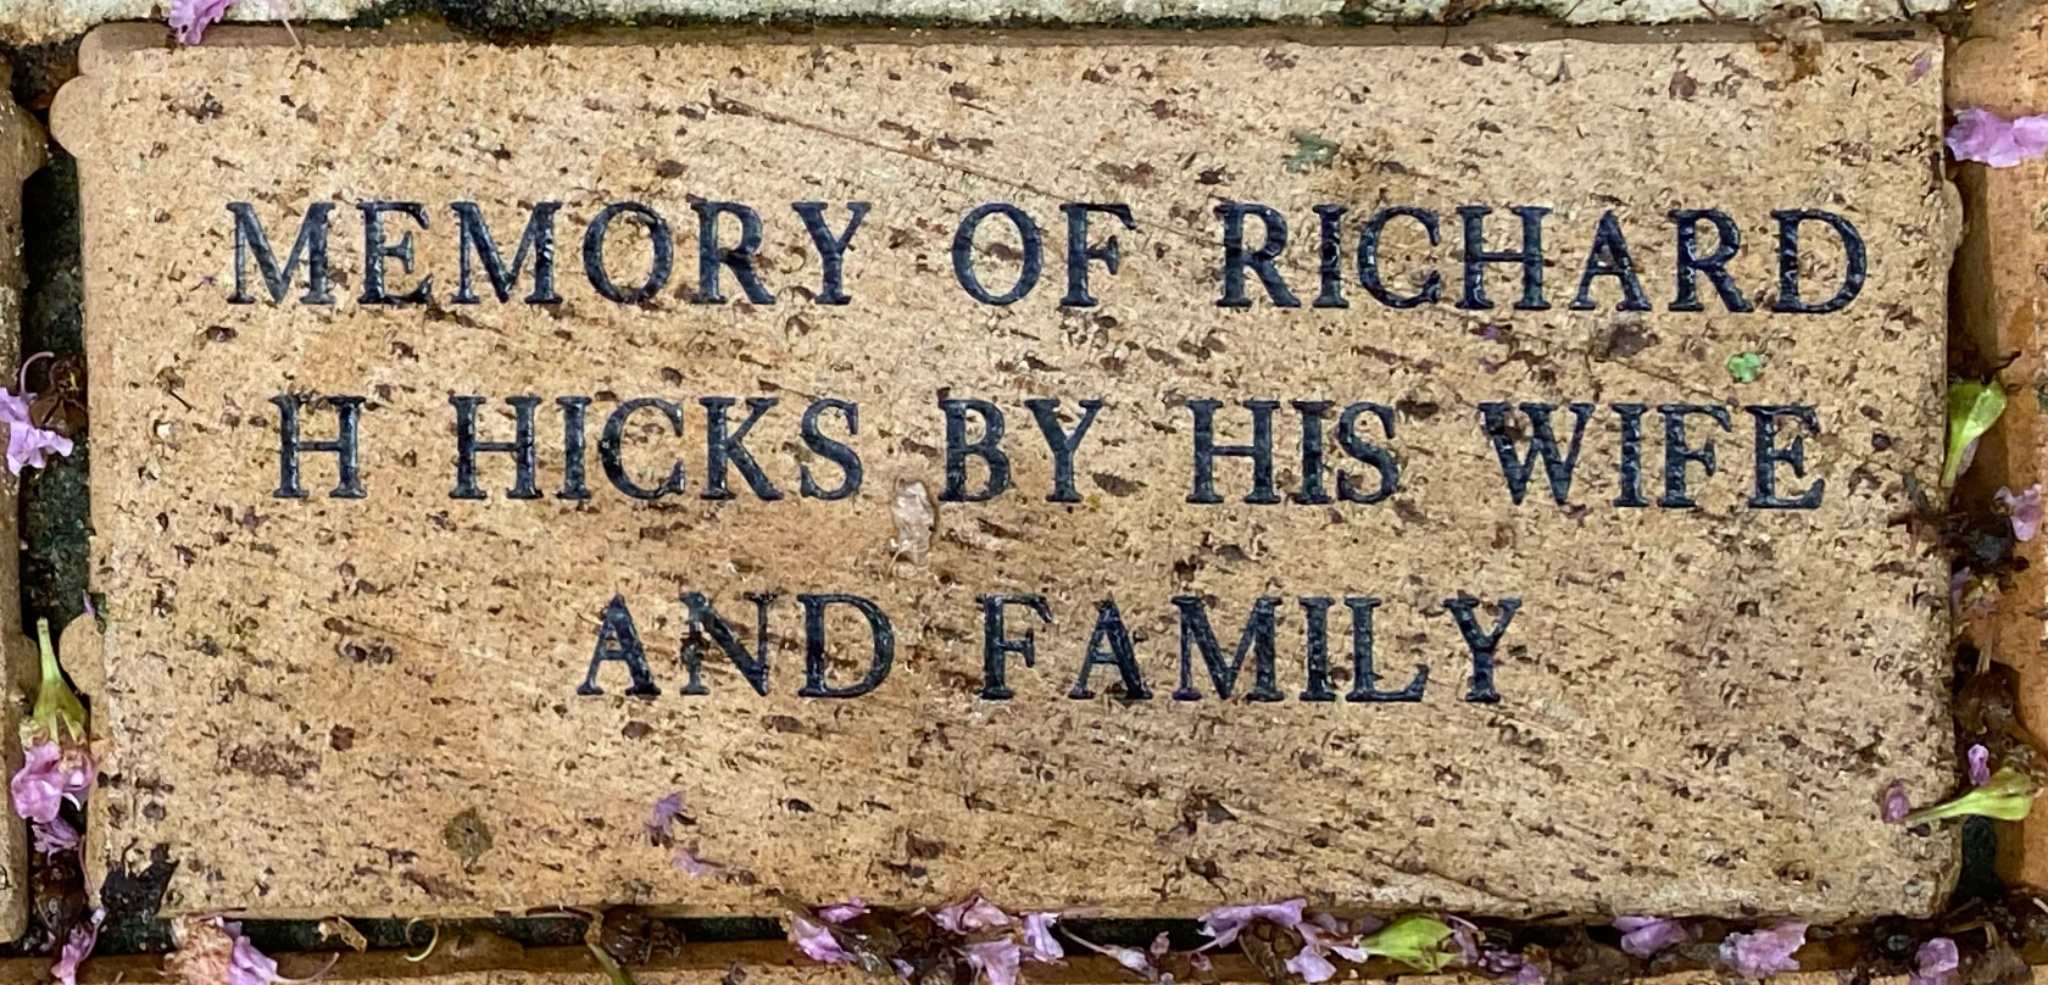 MEMORY OF RICHARD  H HICKS BY HIS WIFE  AND FAMILY